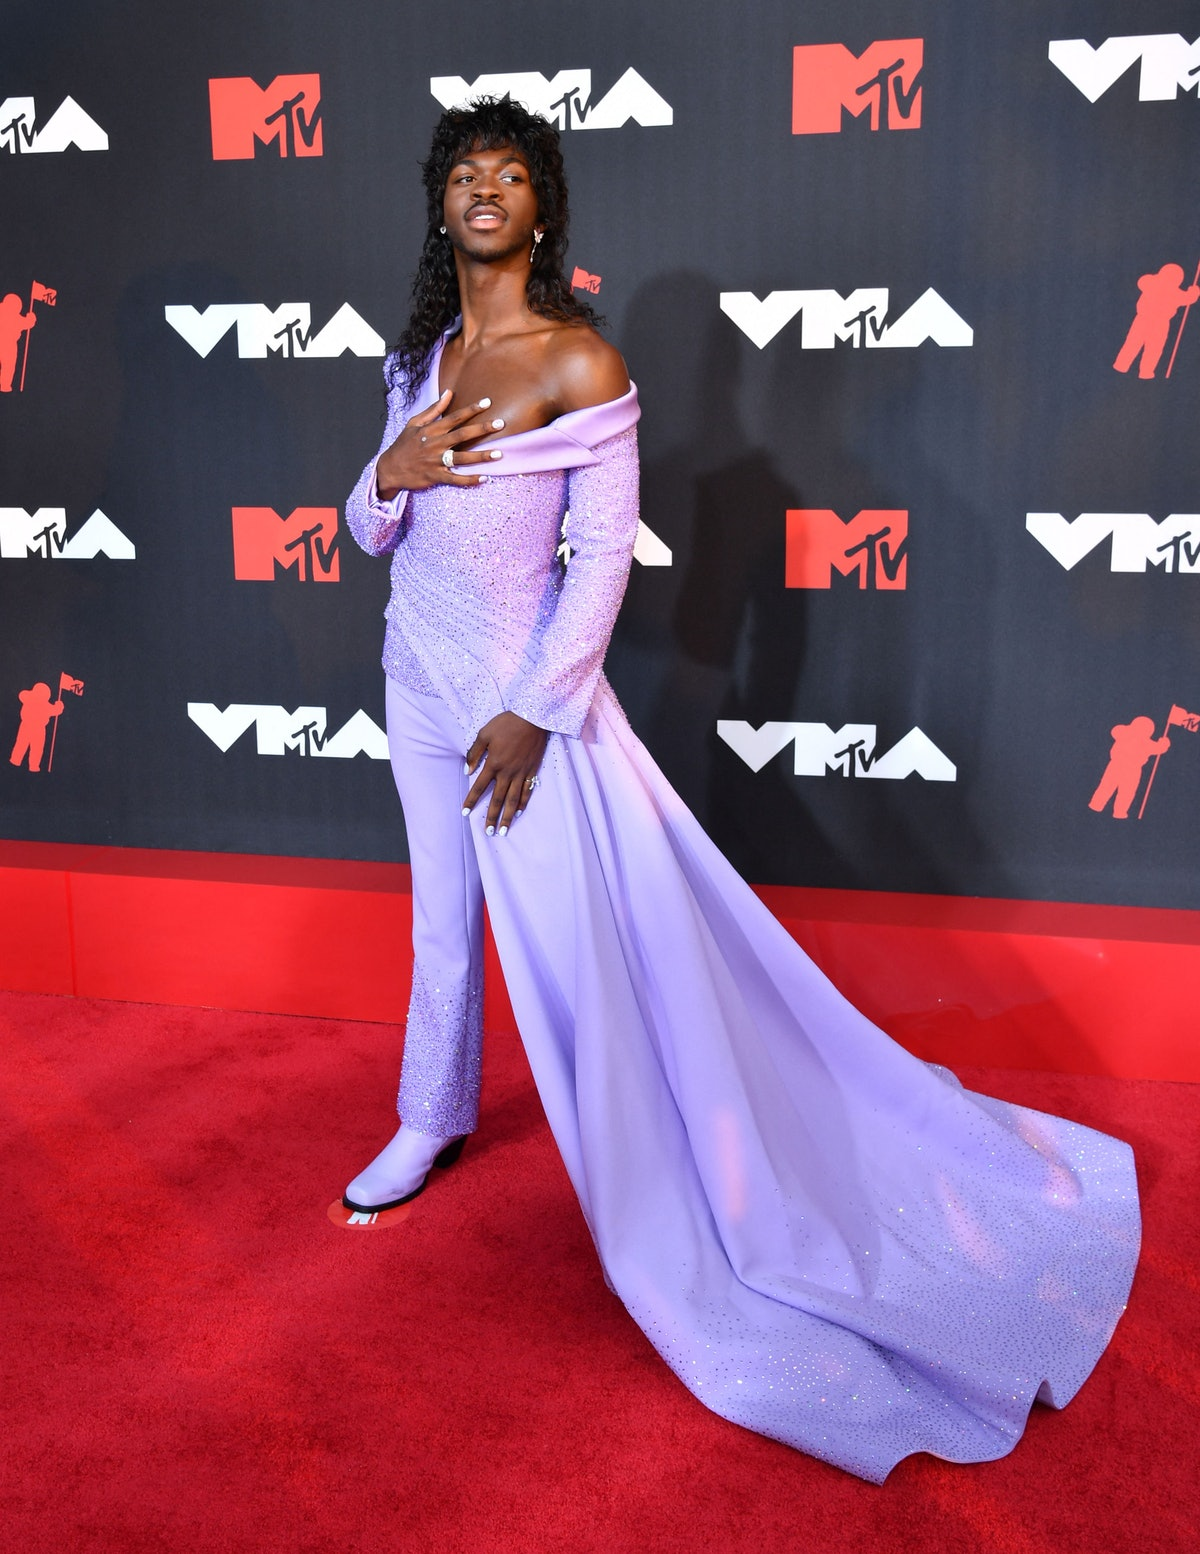 Lil Nas X arrives for the 2021 MTV Video Music Awards at Barclays Center in Brooklyn, New York, Sept...